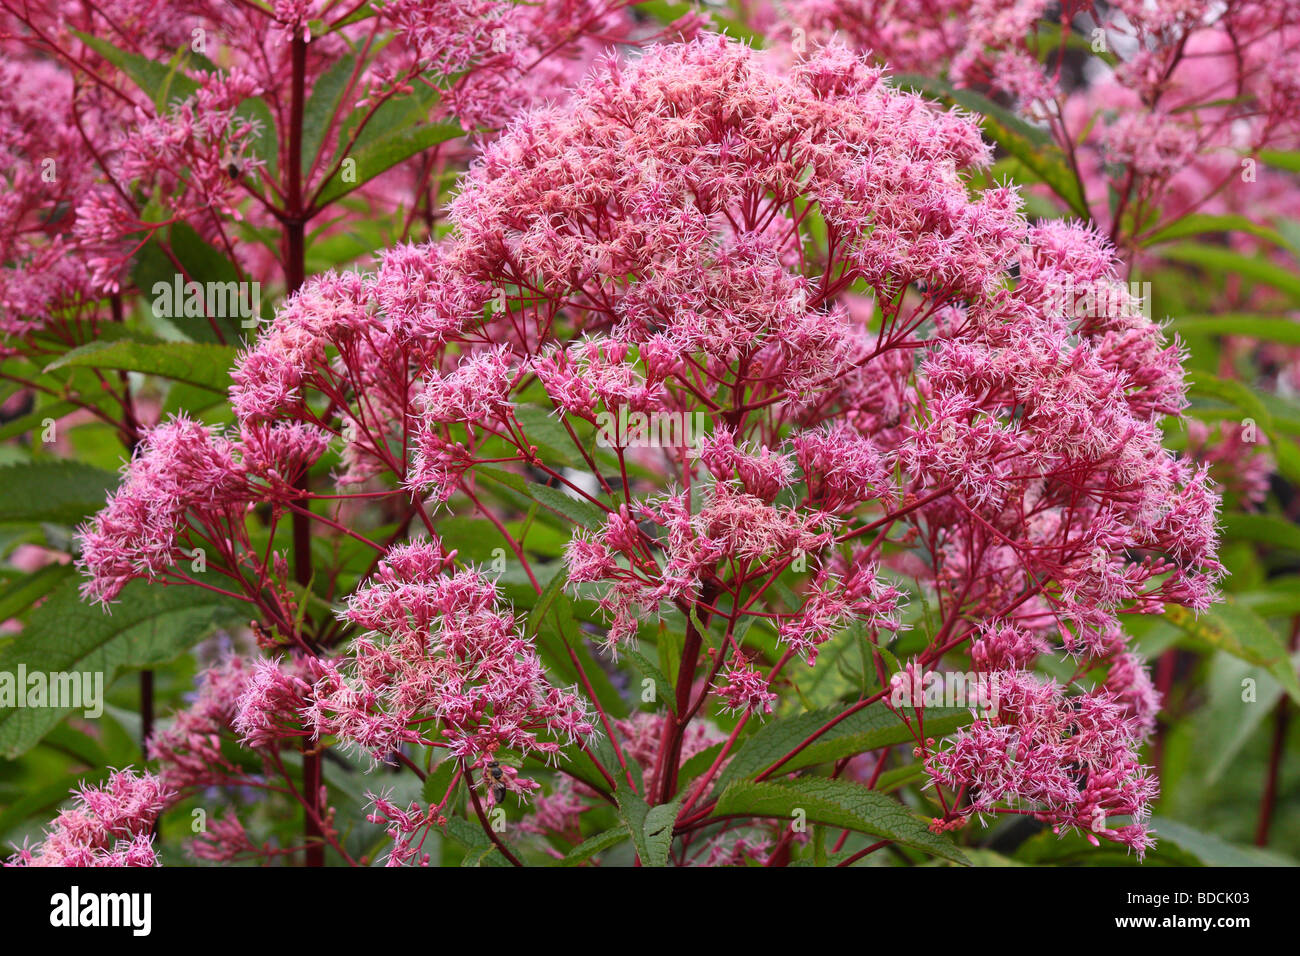 Joe pye weed flowers blooming Eupatorium purpureum - Stock Image